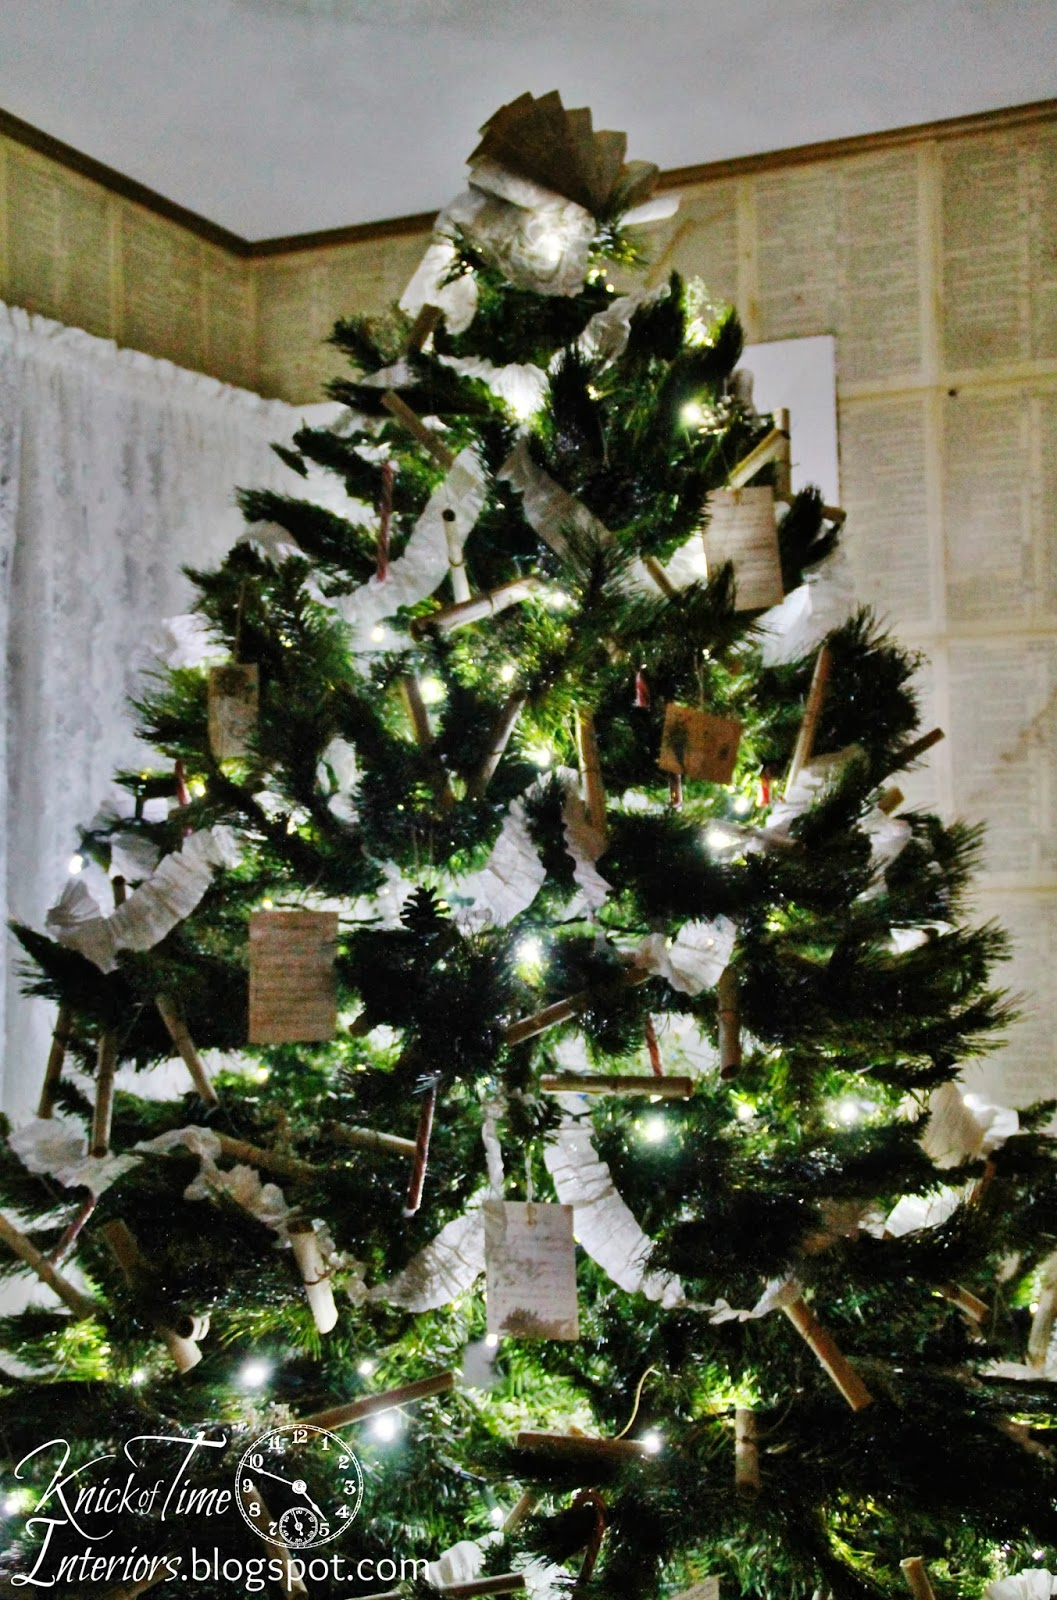 Christmas Tree Vintage Style | Knick of Time